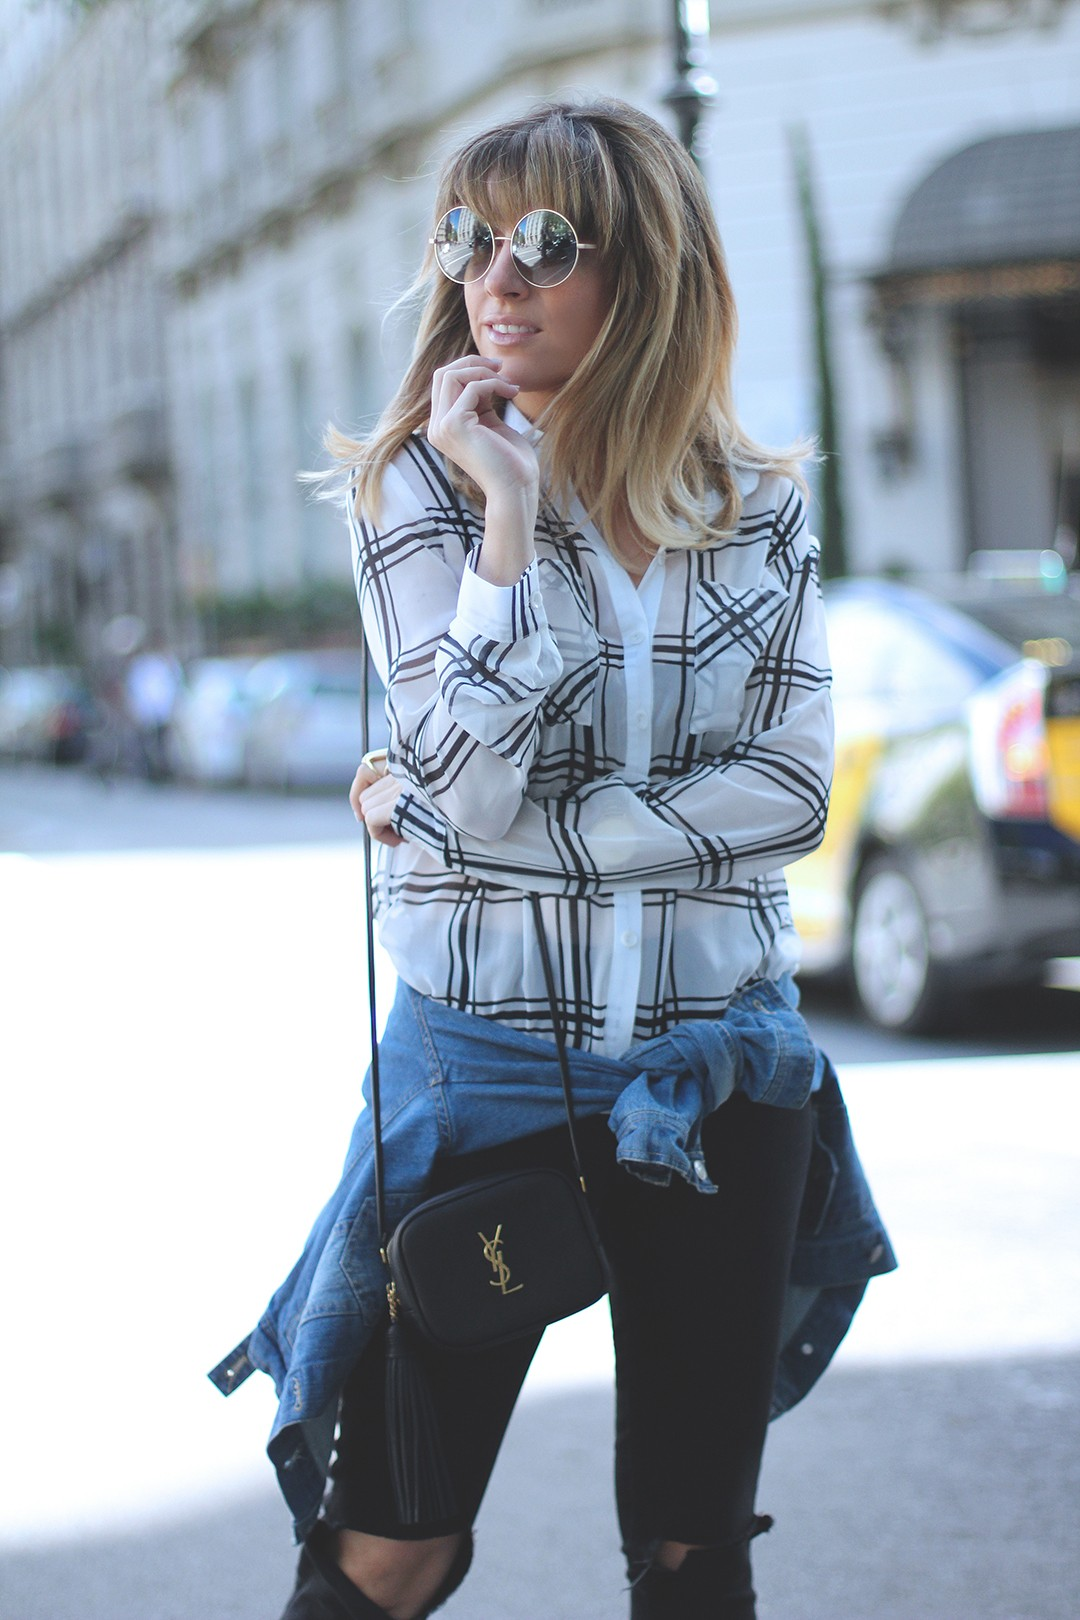 Plaid-shirt-fashion-blogger-monica-sors